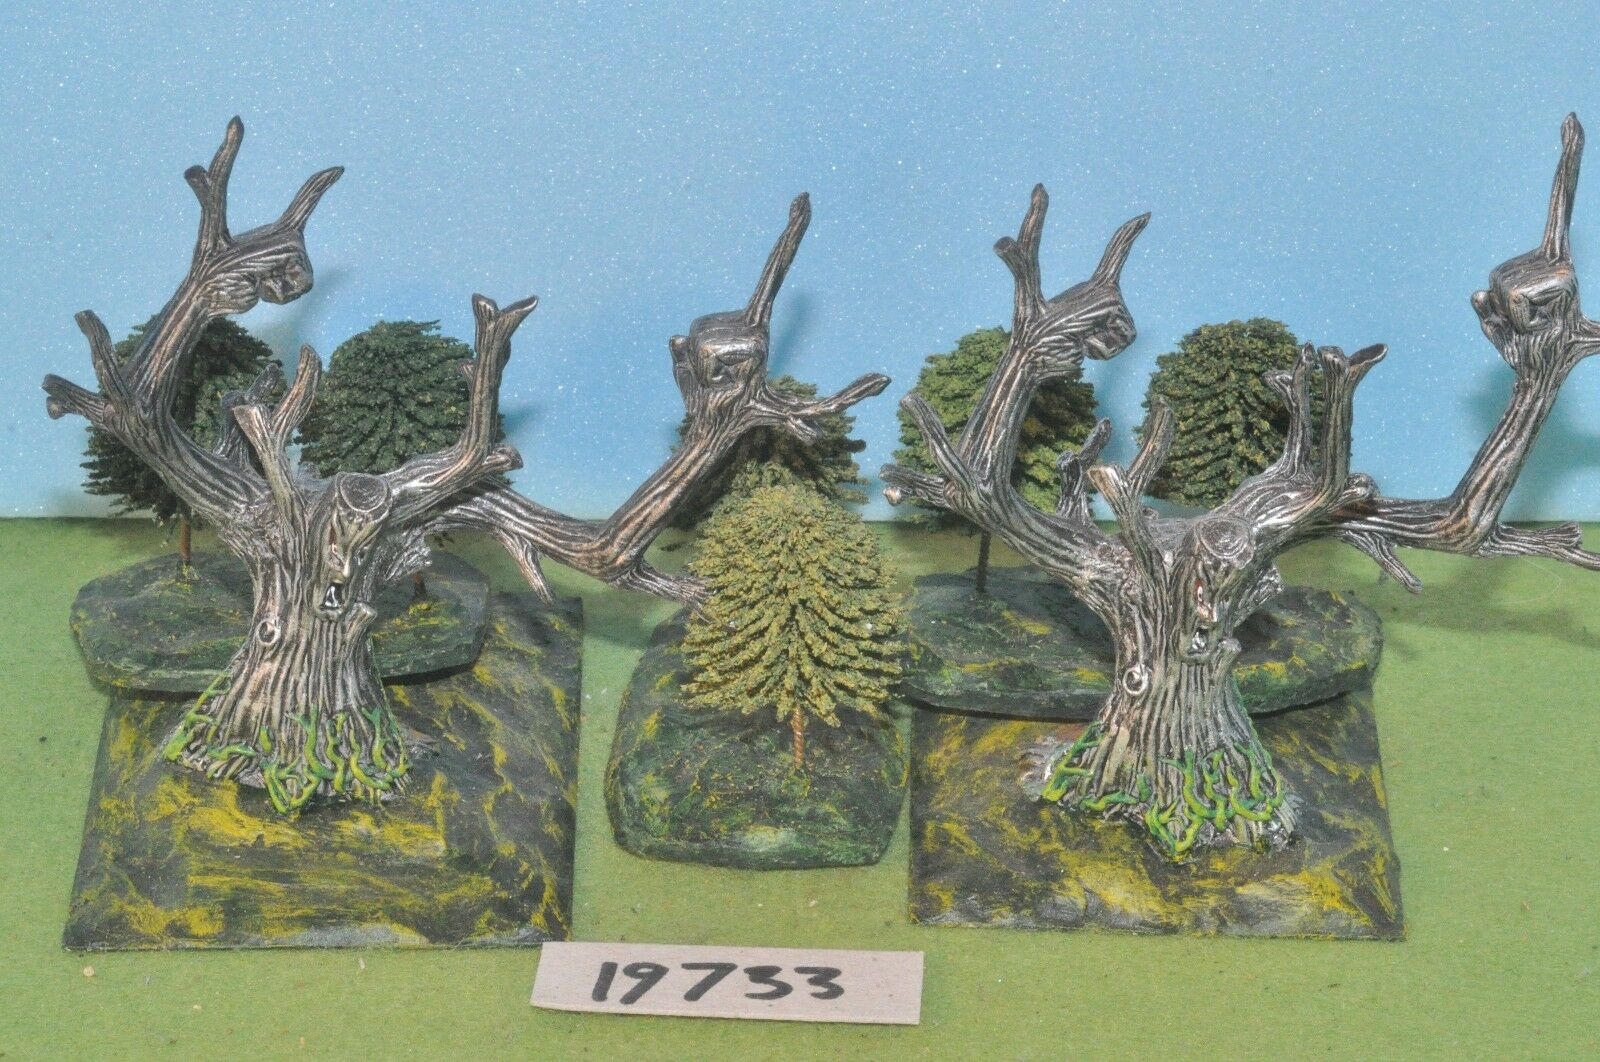 Item fantasy   warhammer - ent tree people 2 metal treekin sigmar - (19733)